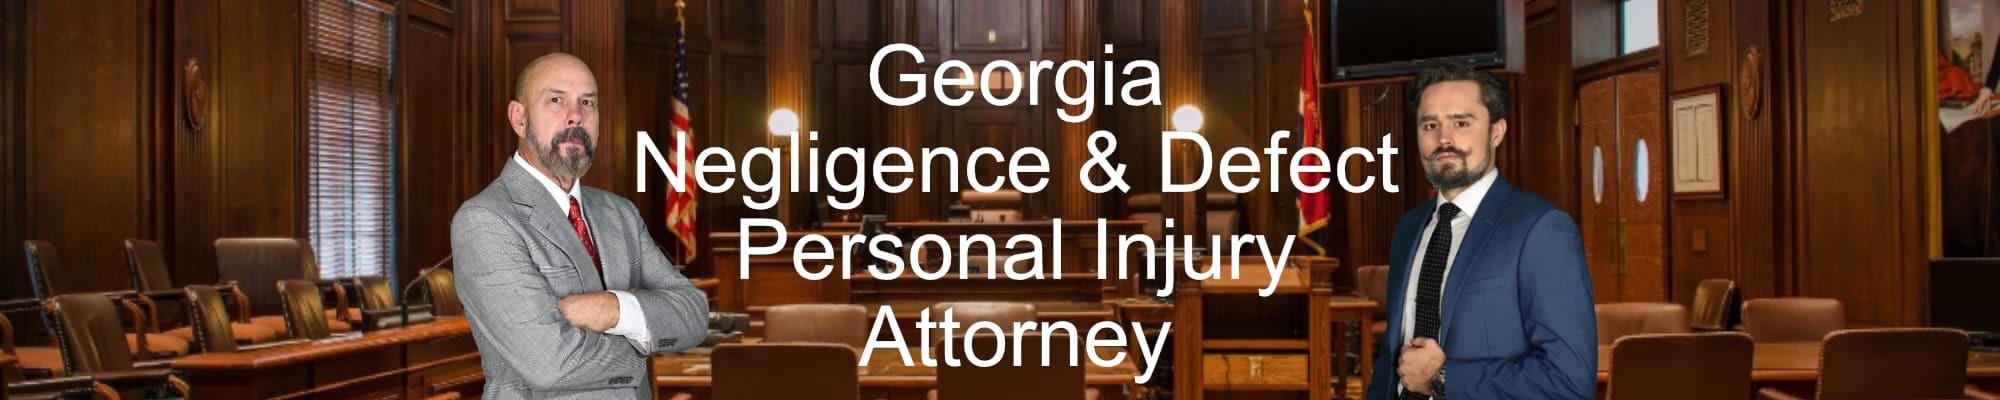 Georgia-Negligence-And-Defect-Personal-Injury-Attorney